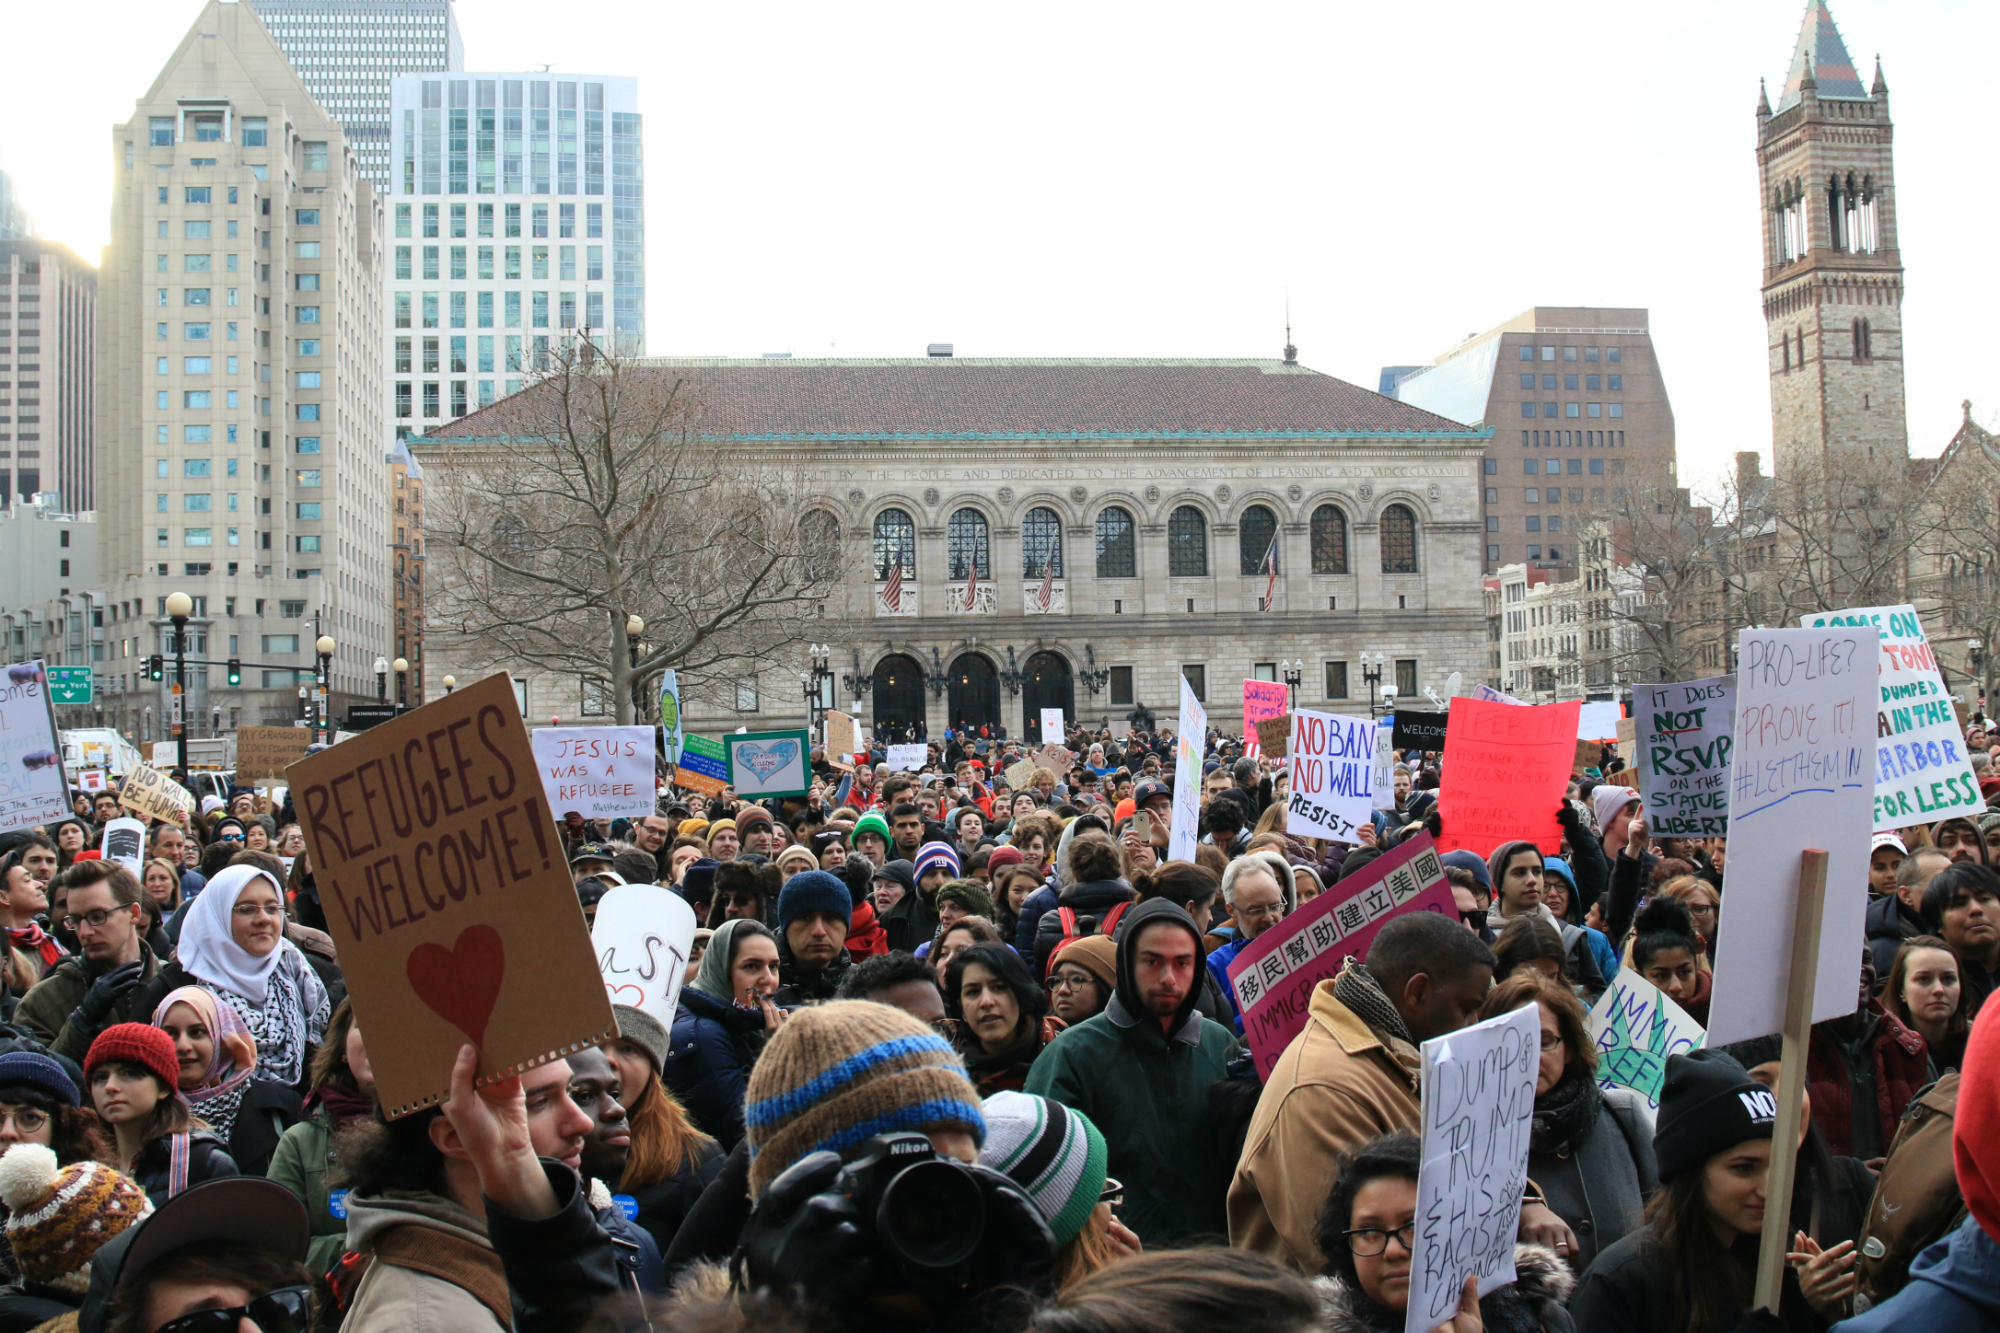 """A crowd gathers in protest against President Donald Trump's immigration ban, in front of the Boston Public Library on Jan. 29, 2017. Signs read """"Refugees welcome"""" and """"Jesus was a refugee."""" (Photo by Giulia Afiune/GroundTruth)"""